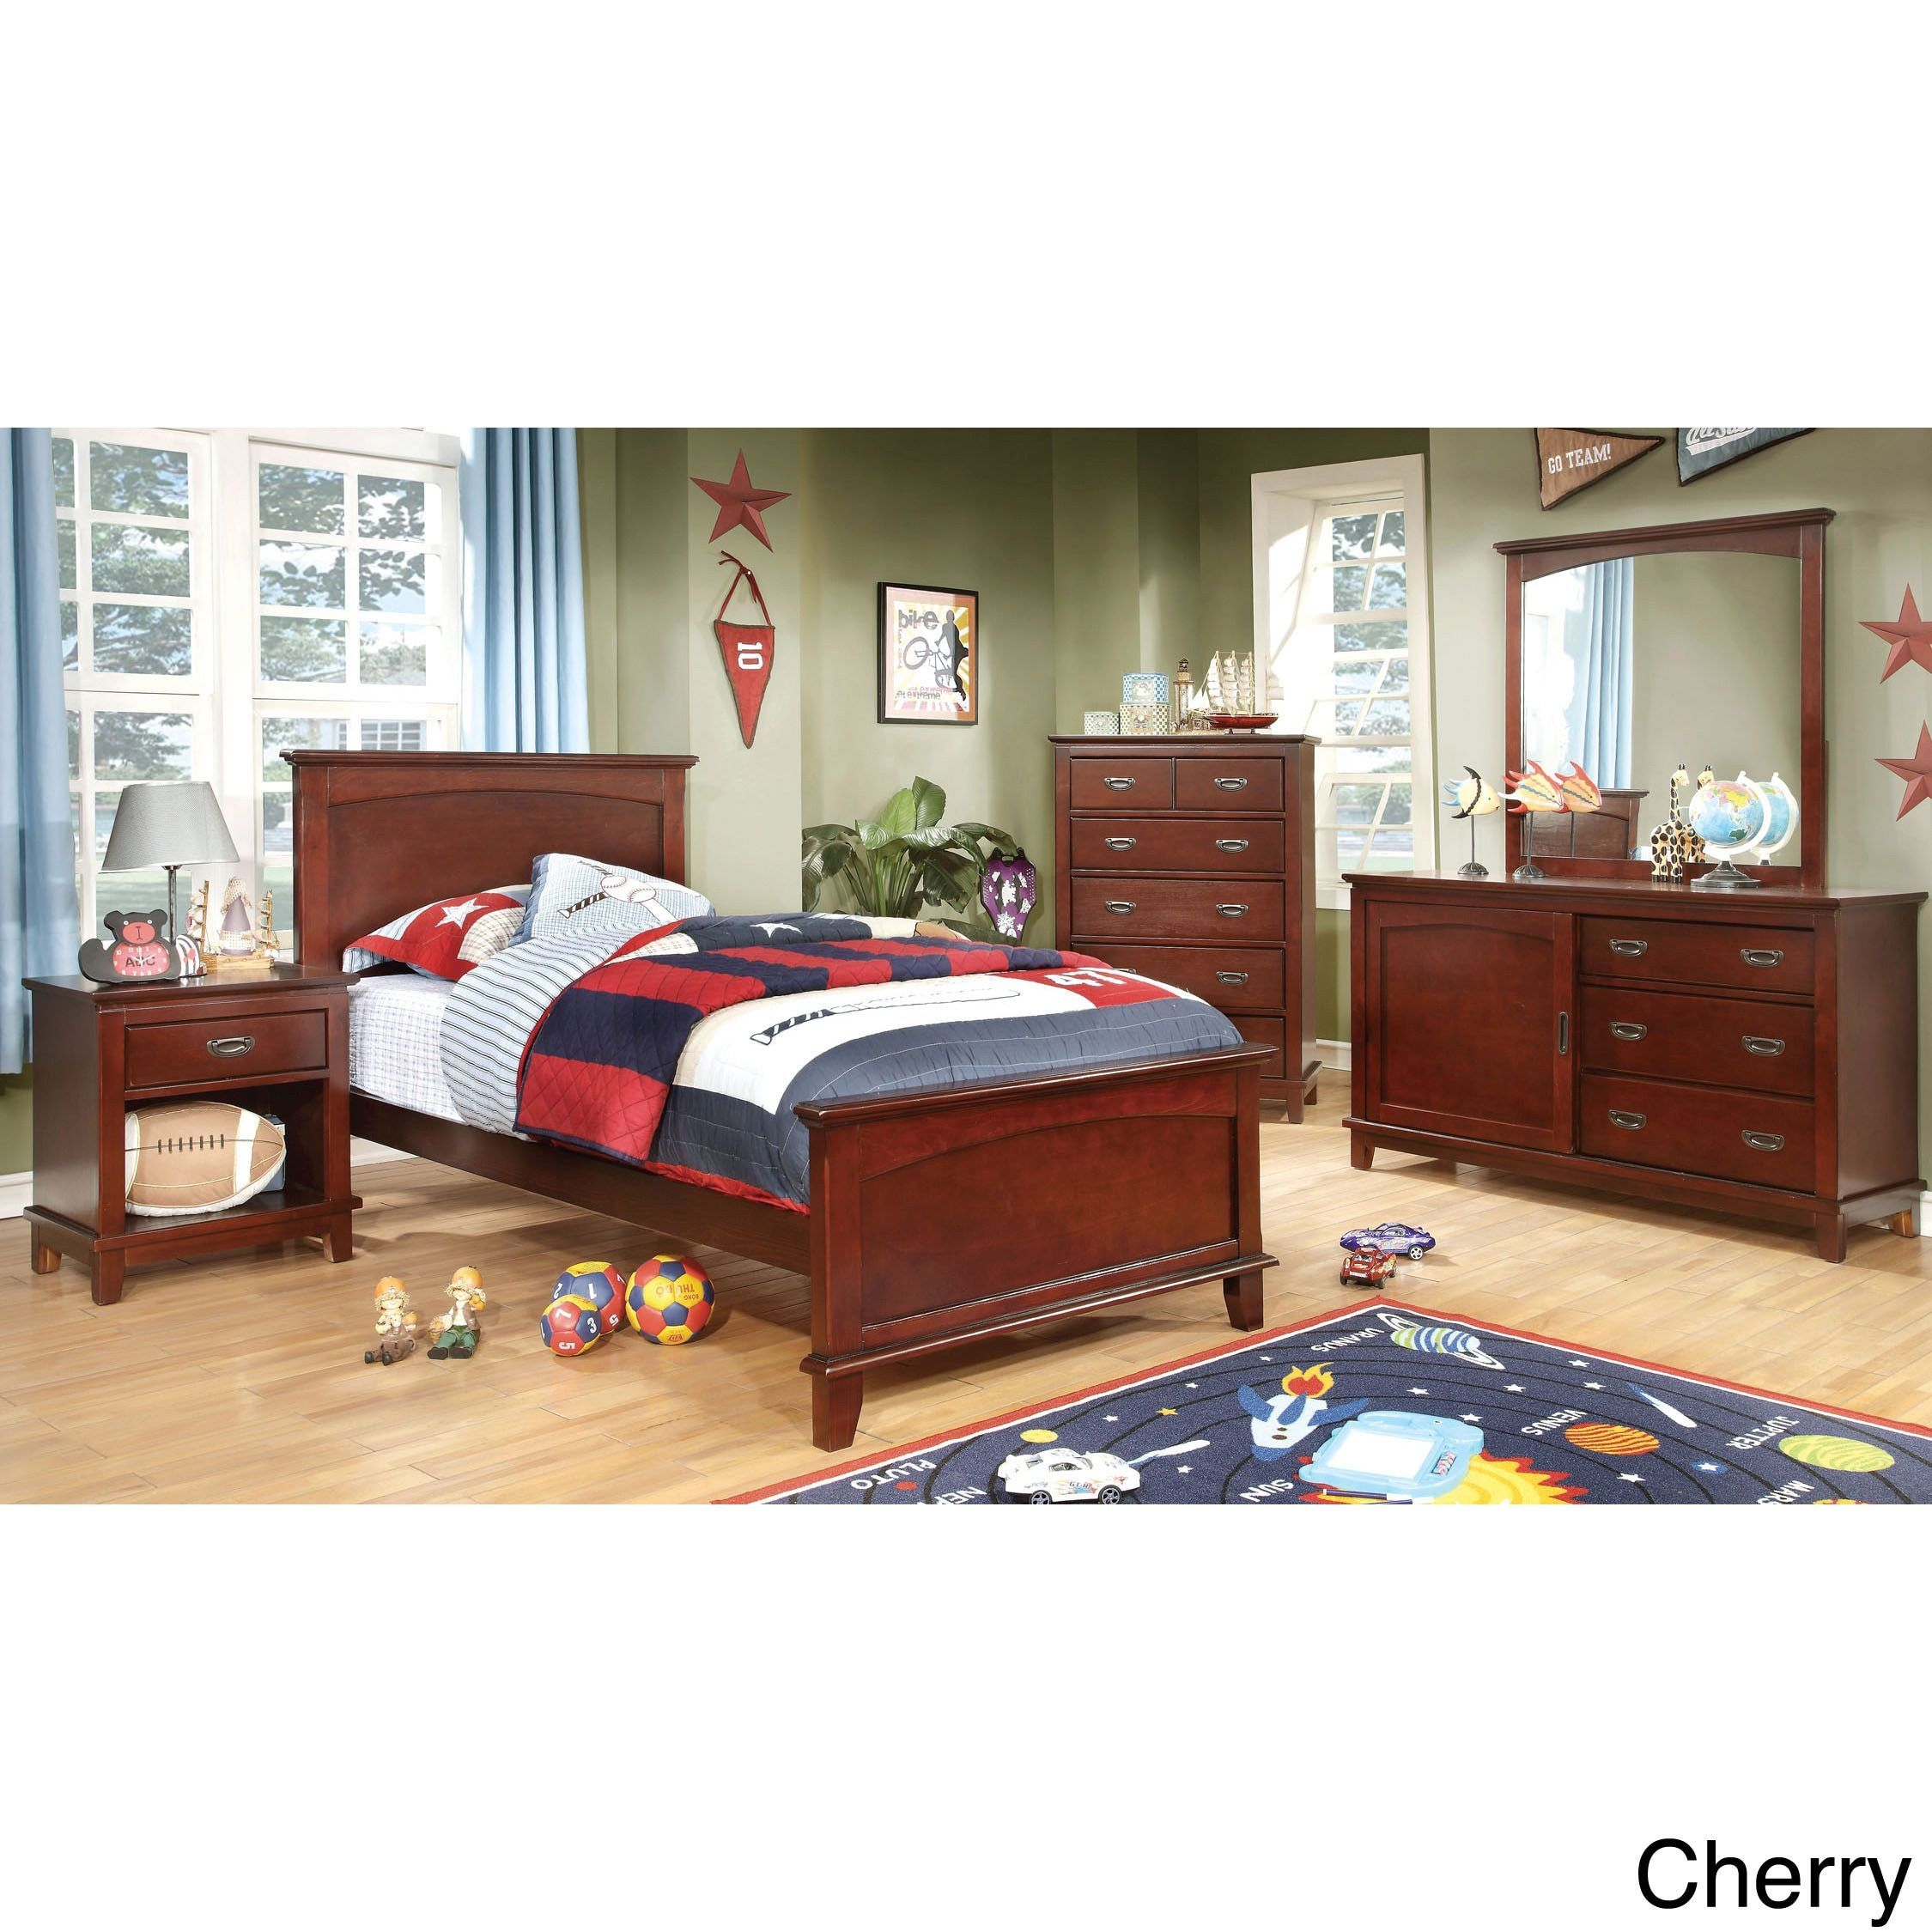 Furniture of America Kennedy 4-piece Platform Youth Bedroom Set (